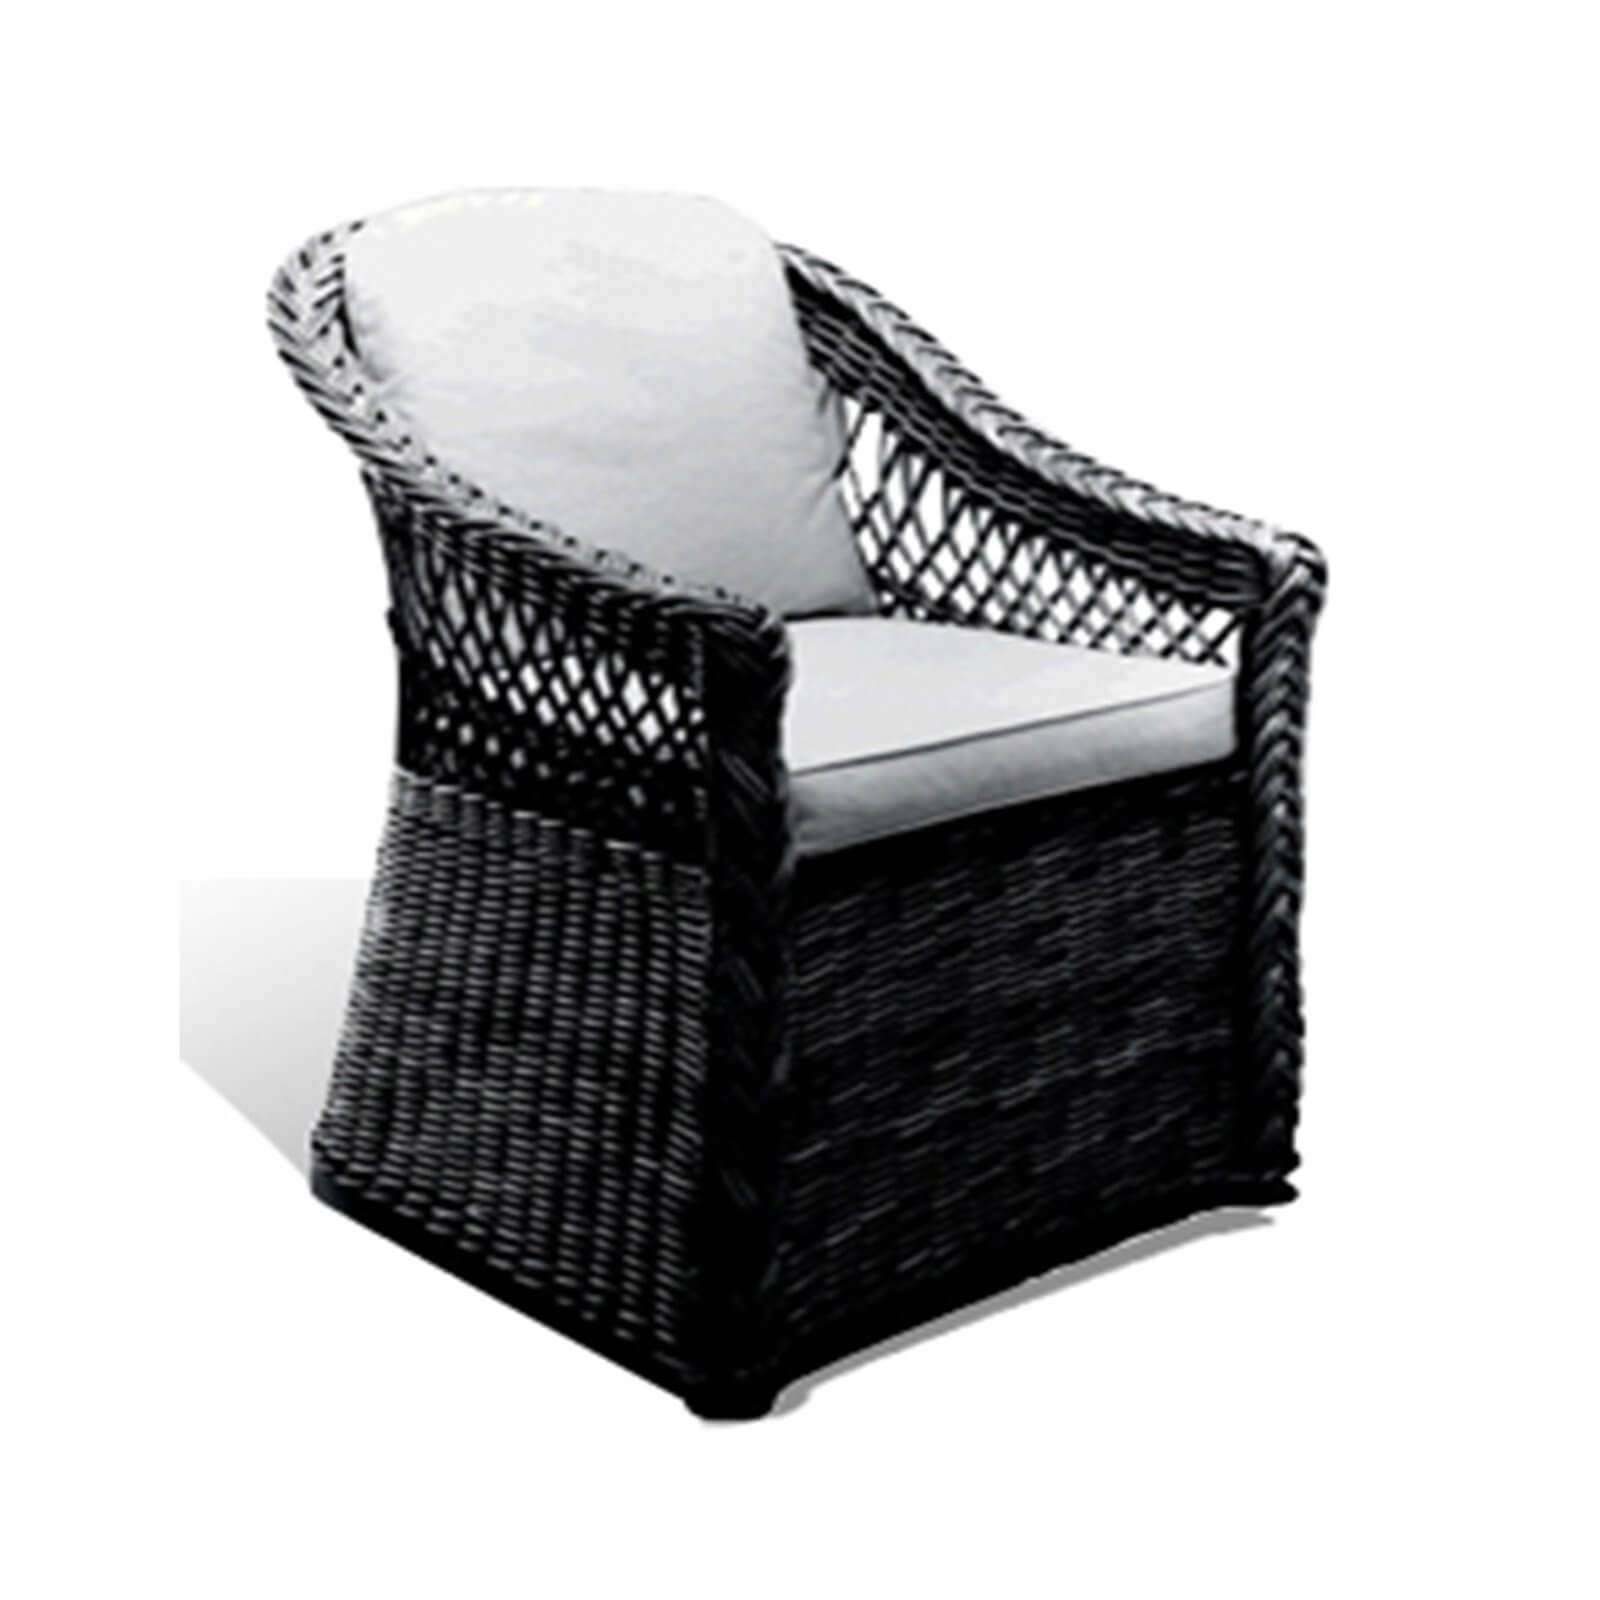 LAKE HOUSE WICKER DINING CHAIR - STUART MEMBERY HOME COLLECTION